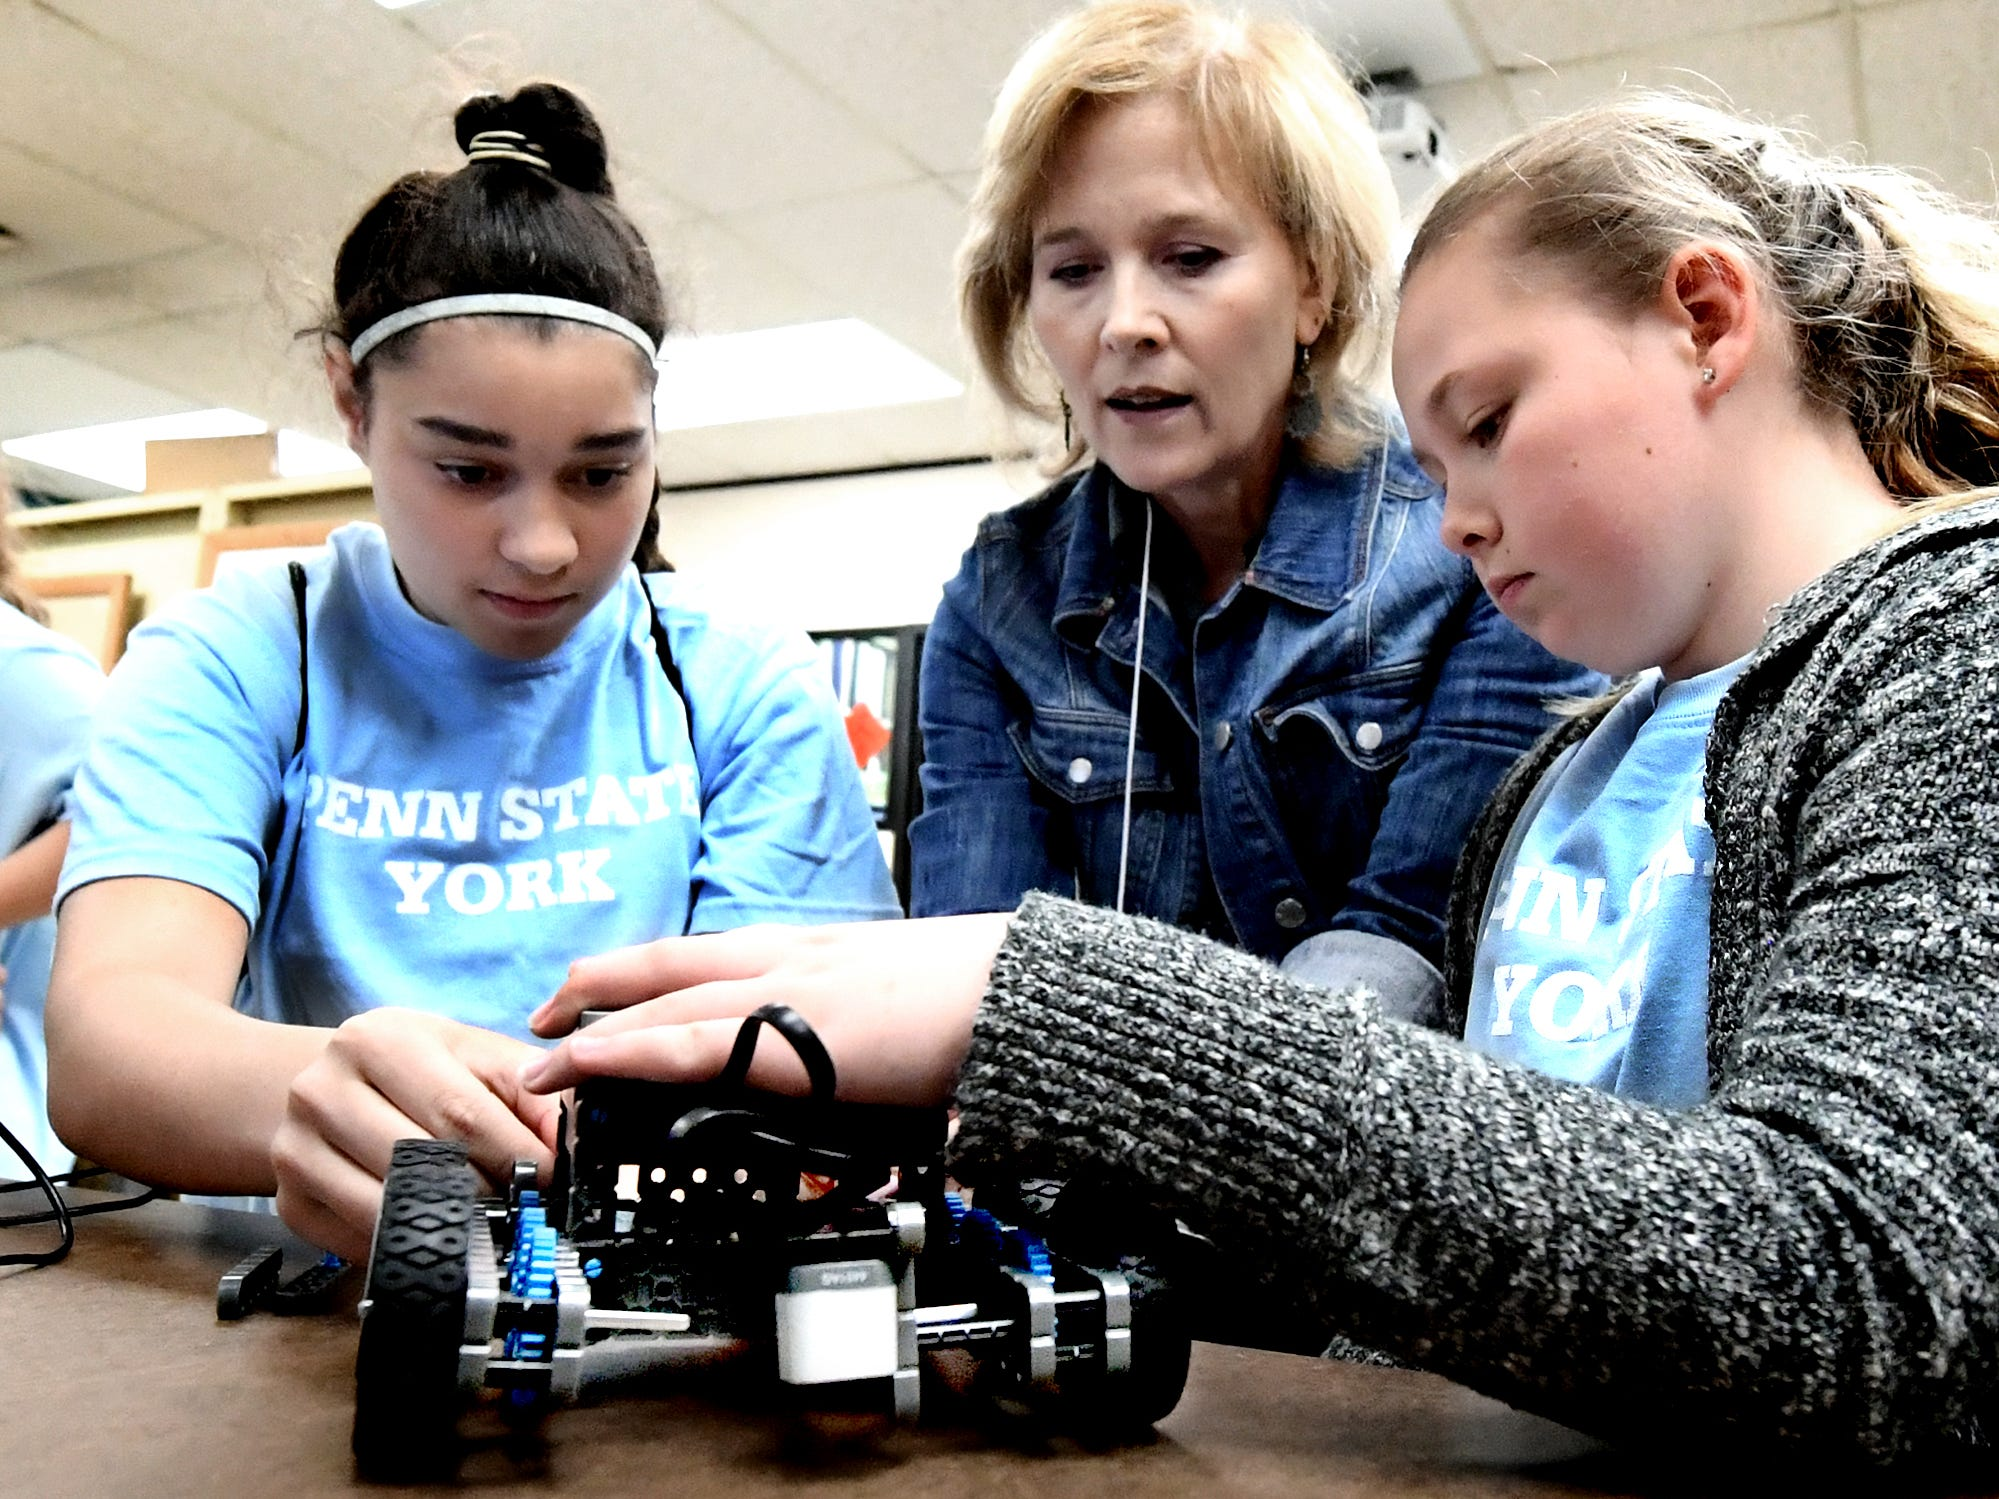 Penn State York engineering instructor Amy Harmon Krtanjek, center, works with Saint Theresa School students Samani Werner, left, and Alexus Browand during the Robogirl workshop at the Pathways to Your Future: Exploring STEAM Careers event at Penn State York Friday, May 10, 2019. Over 200 seventh-grade girls from 28 area schools participated in the program which highlighted science, technology, engineering, art, and mathematics (STEAM) careers. Industry leaders administered the workshops during the program, which is in its 23rd year. Bill Kalina photo